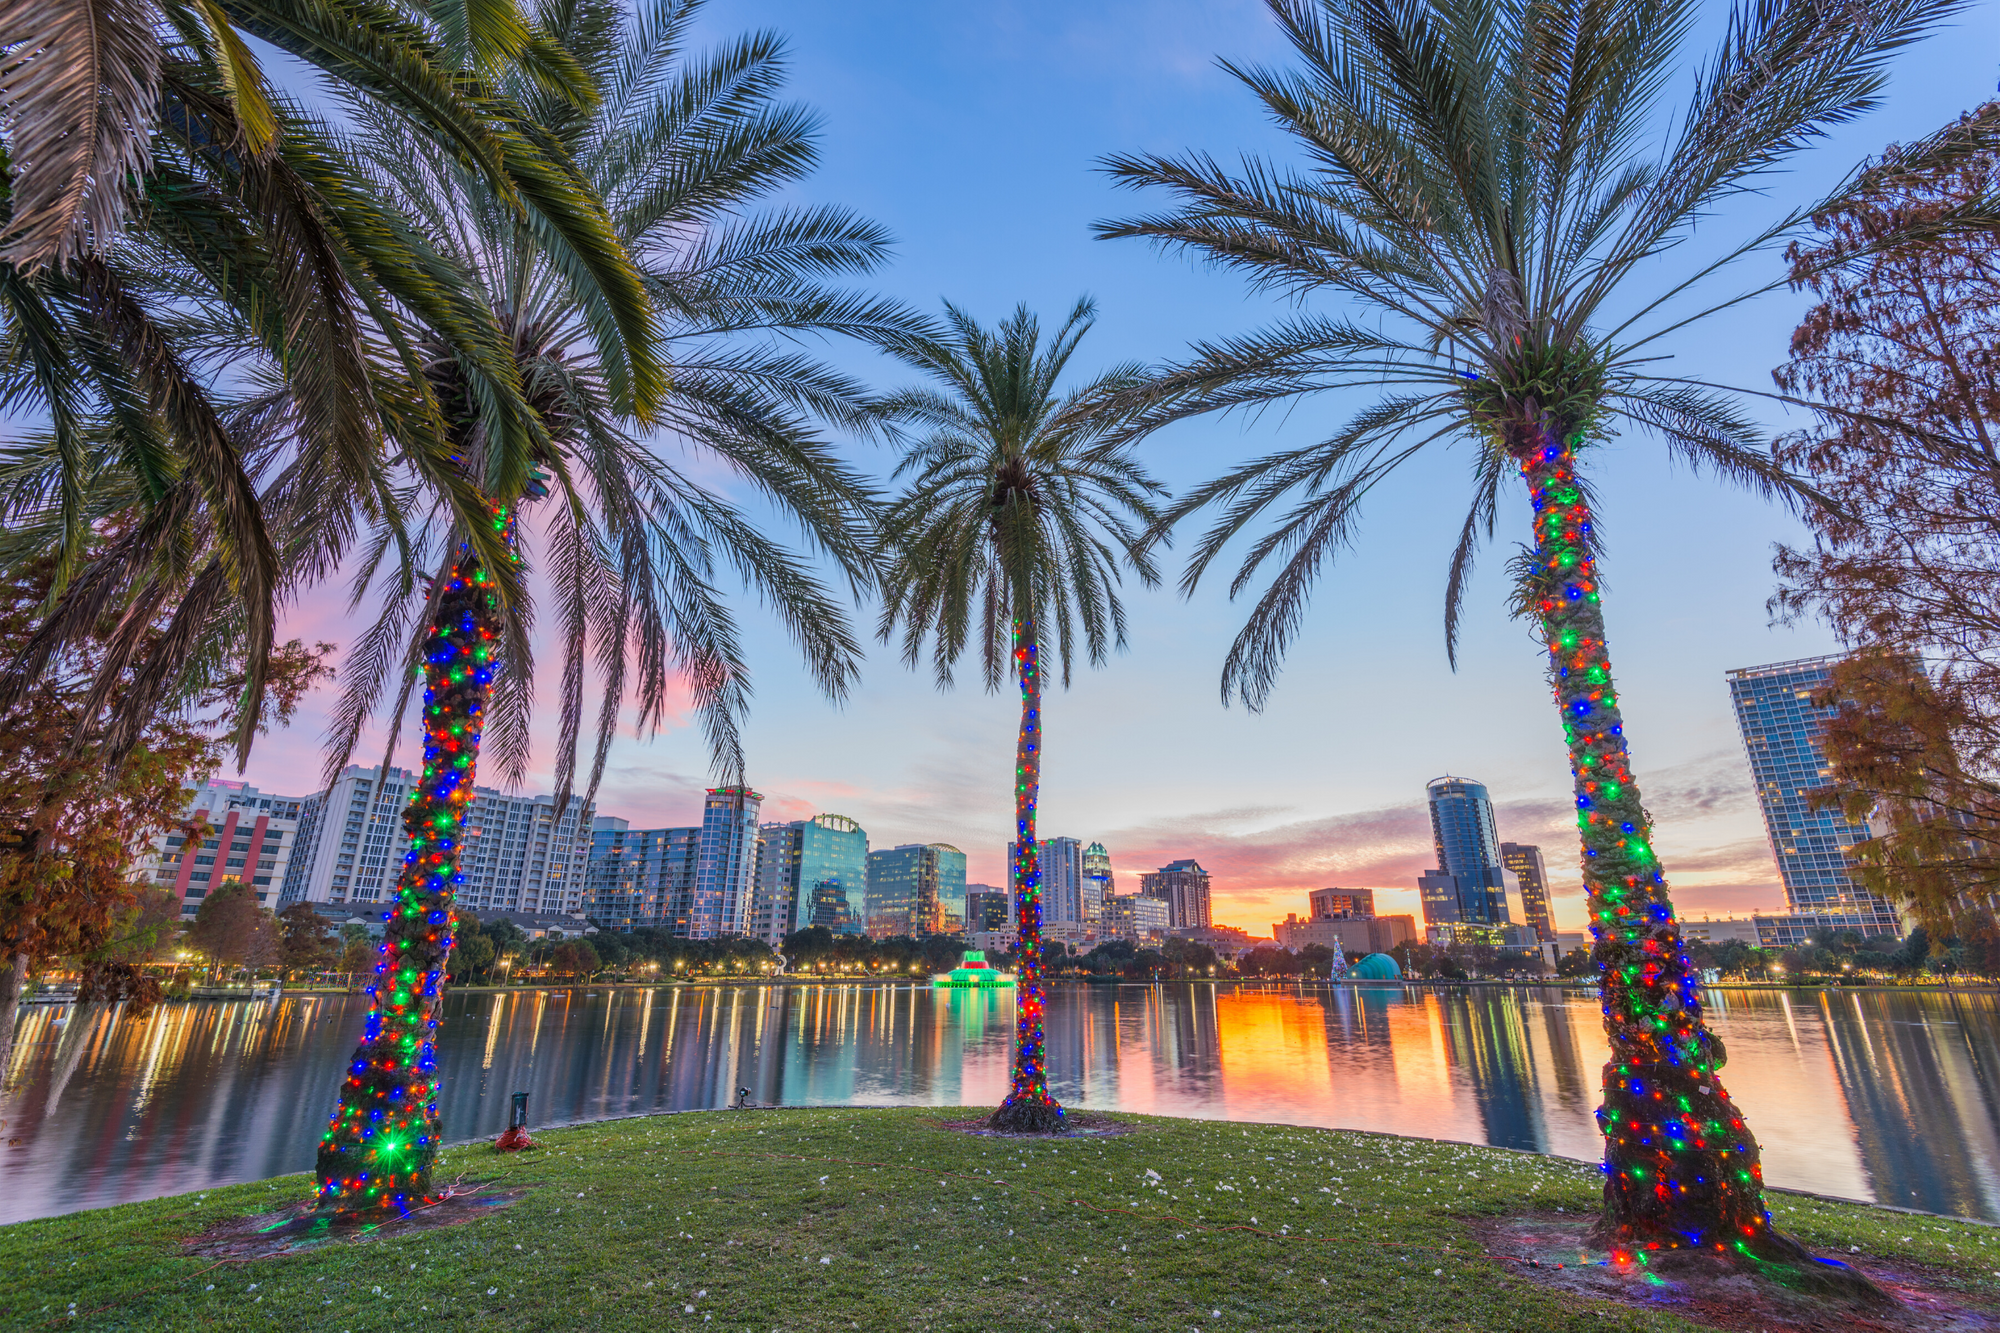 Things to Do in Florida to Experience the Holidays